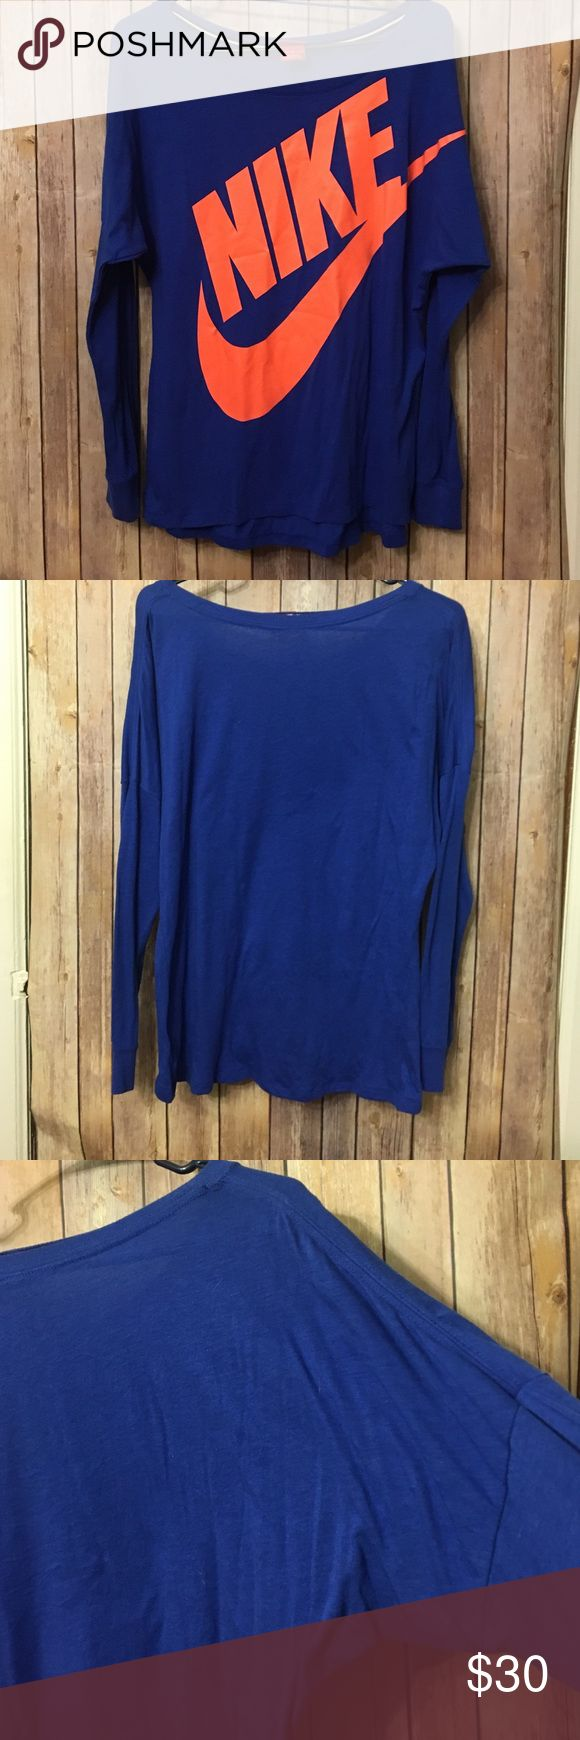 Nike off the shoulder top Off the shoulder top. Long batwing sleeves. Royal blue with orange logo. Excellent used condition. Size medium Nike Tops Tees - Long Sleeve